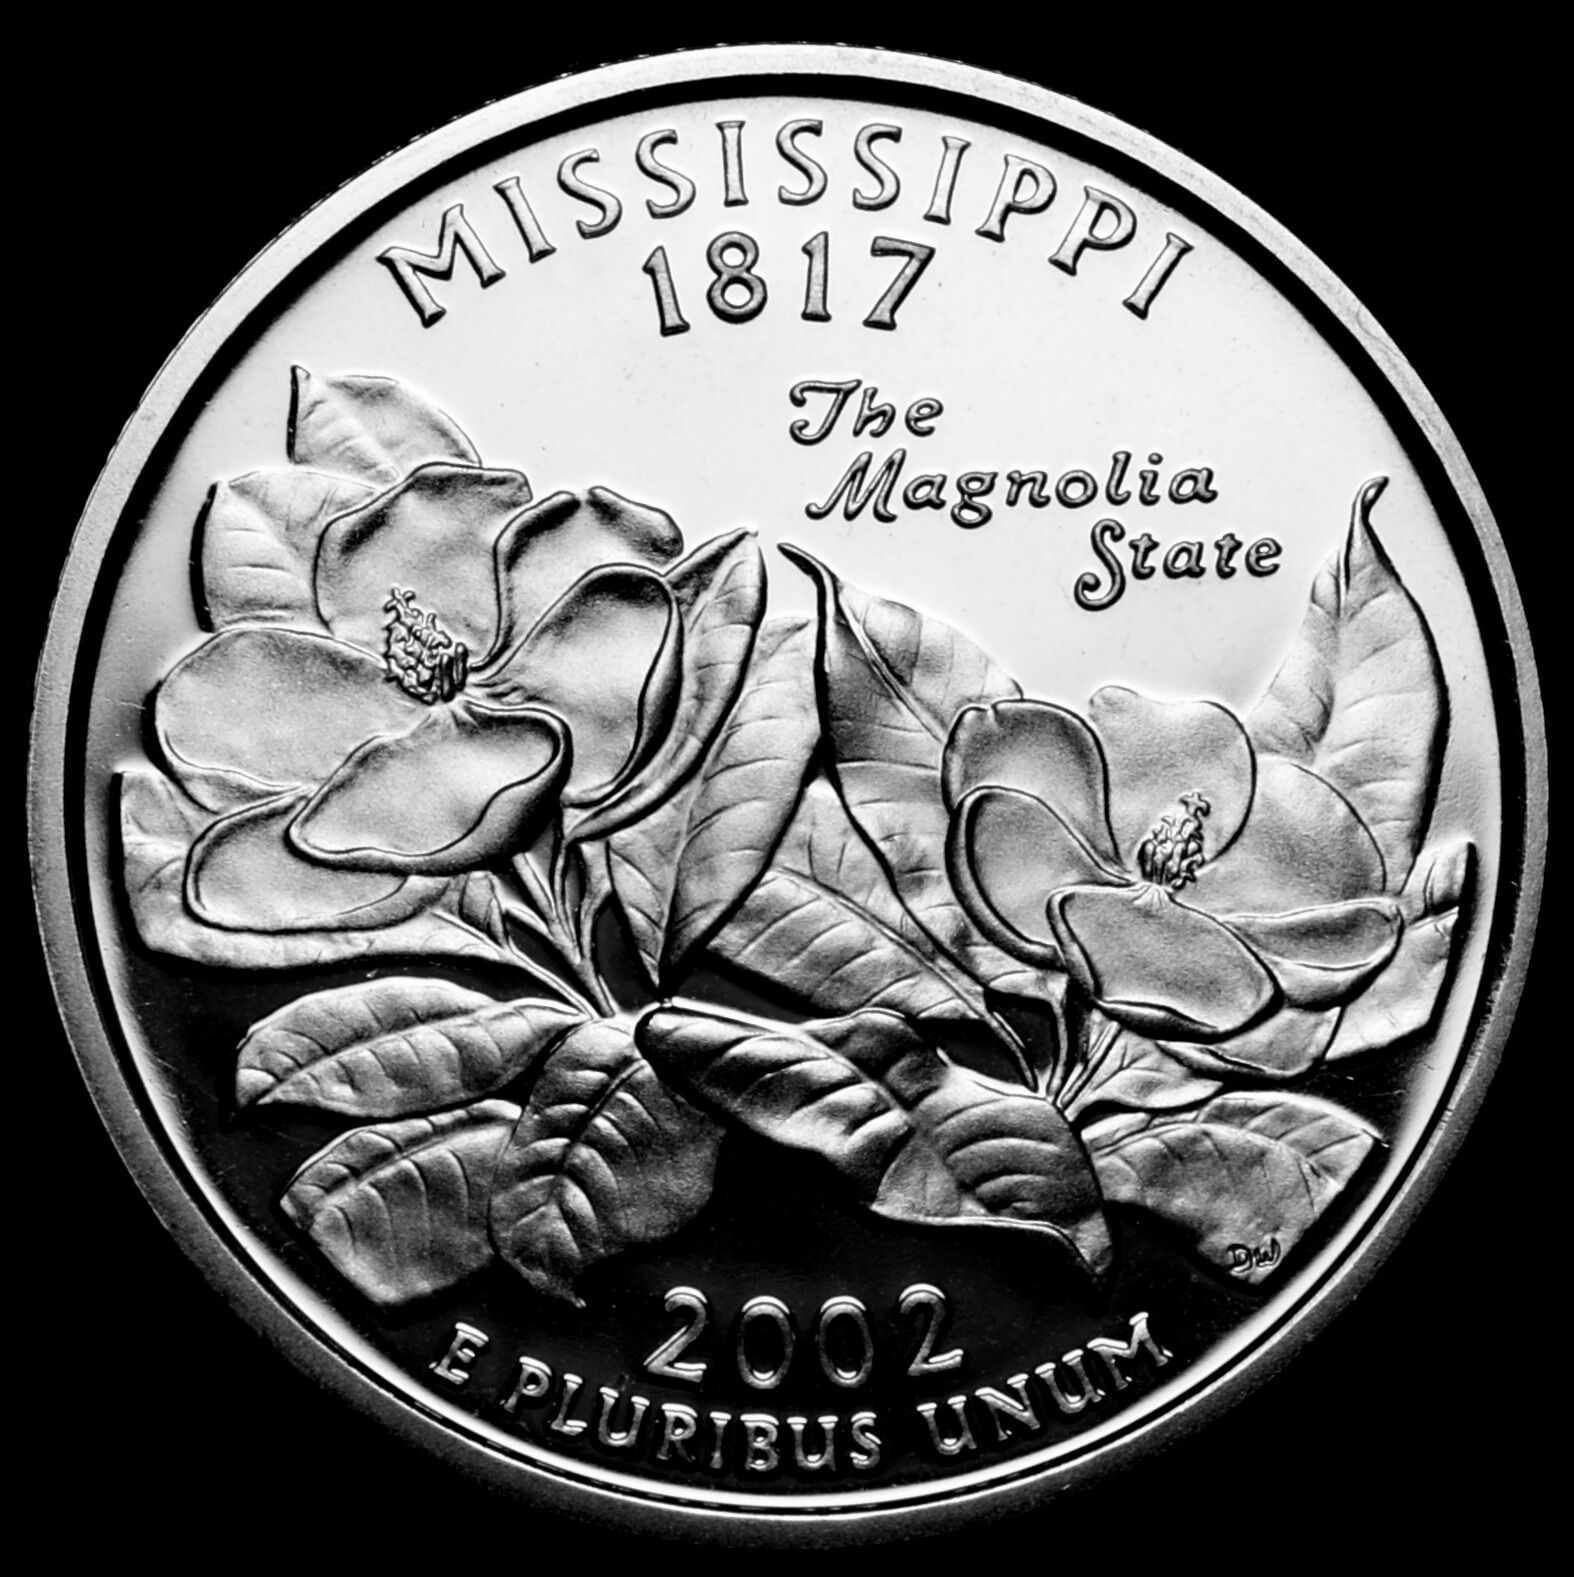 2002 s mississippi state gem clad proof statehood washington 1 of 2only 1 available publicscrutiny Gallery